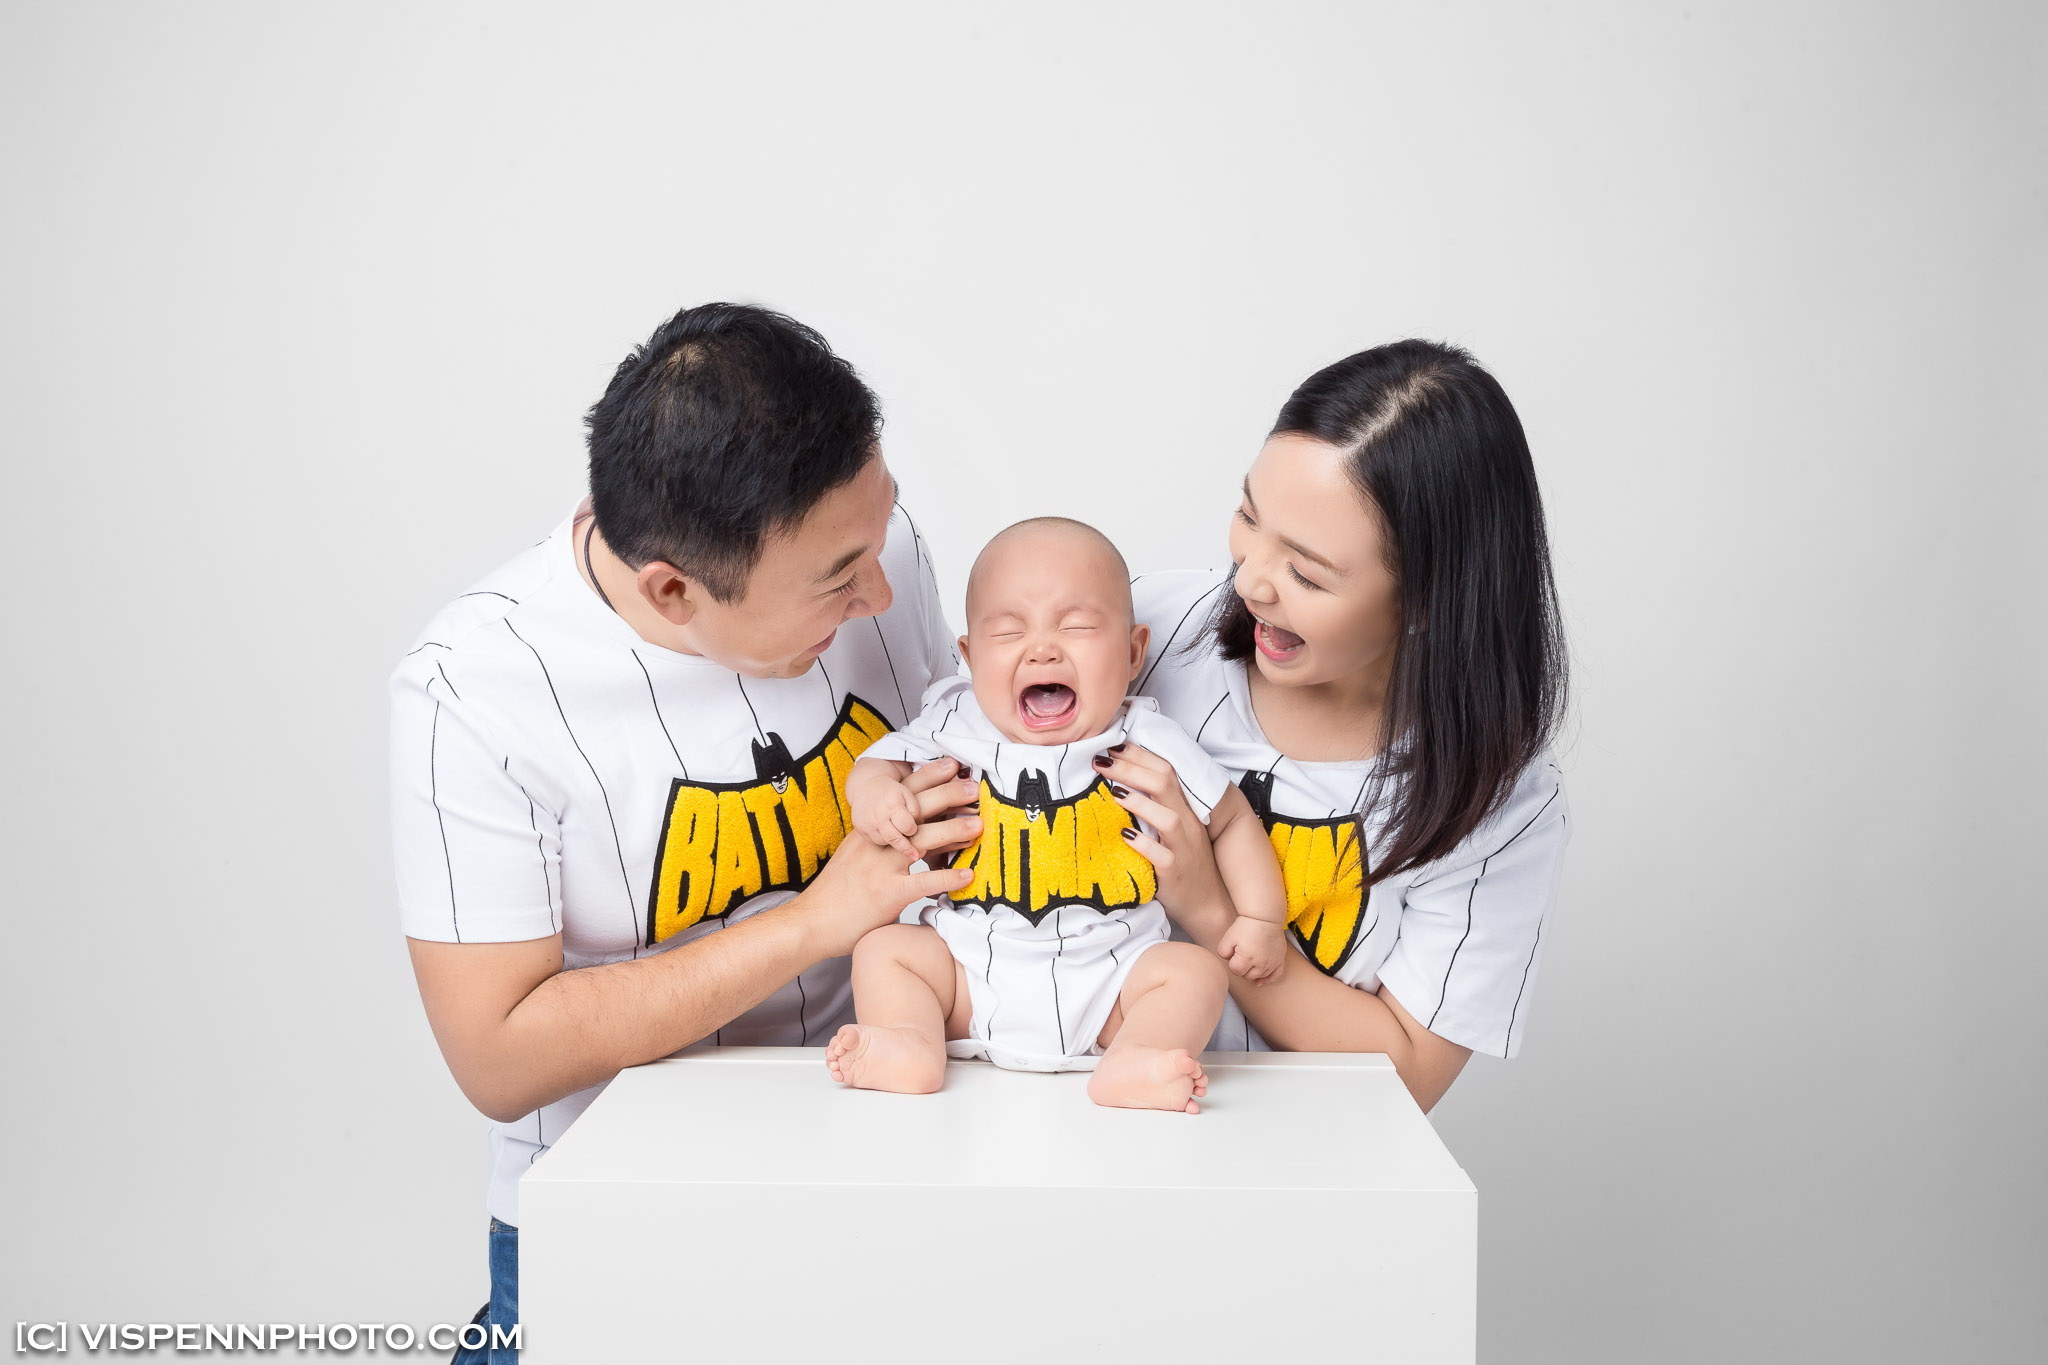 Melbourne Newborn Baby Family Photo BaoBao VISPENN 墨尔本 儿童 宝宝 百天照 满月照 孕妇照 全家福 100DAYS VISPENN ZhaoLuWen 1122